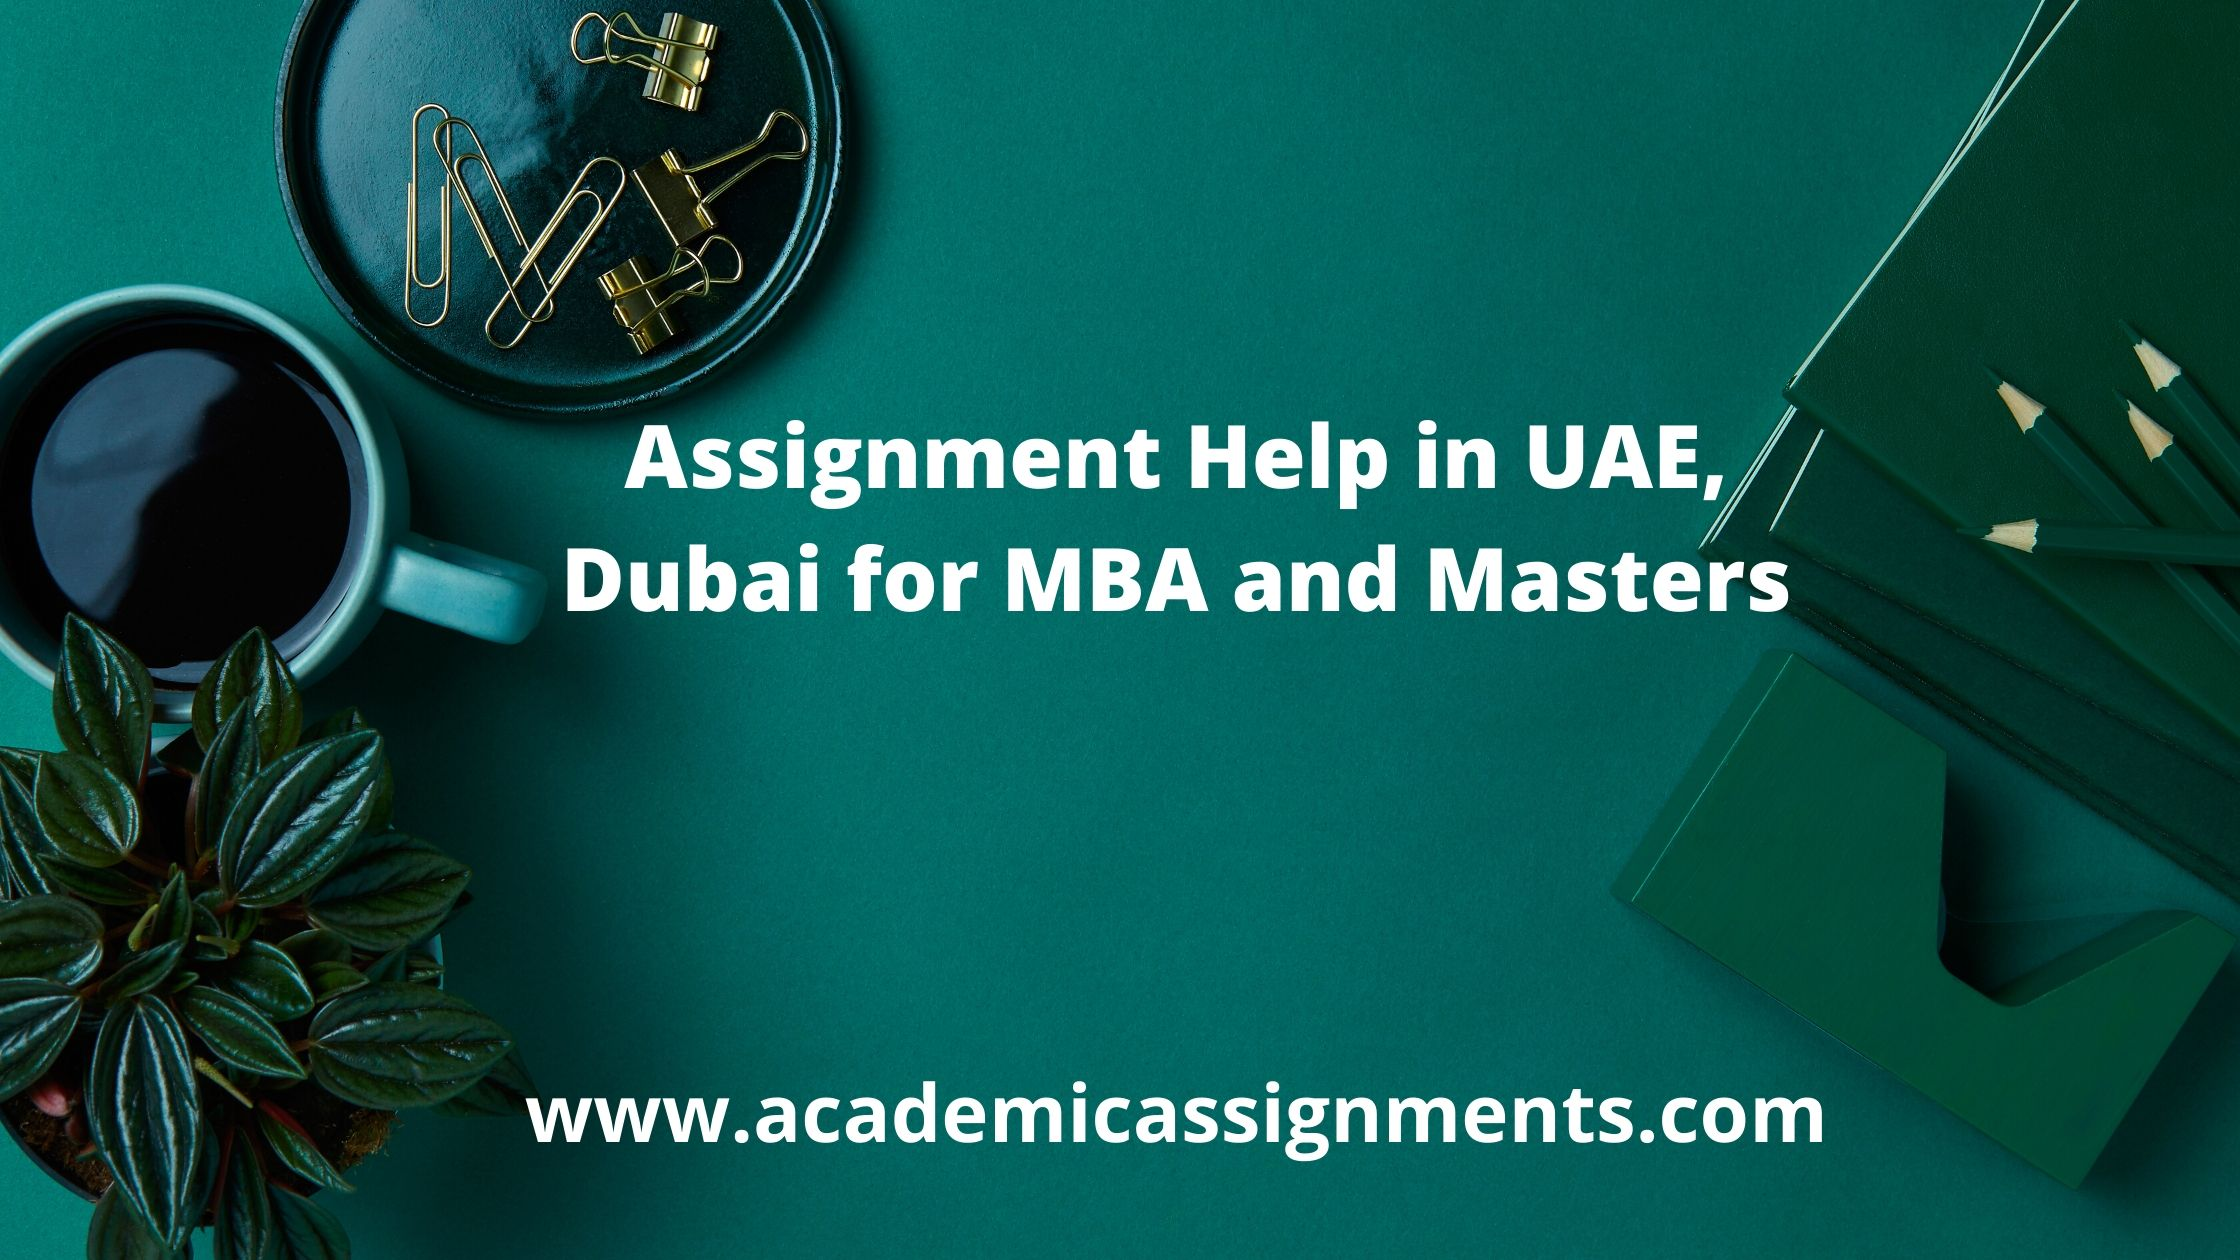 Assignment Help in UAE, Dubai for MBA and Masters